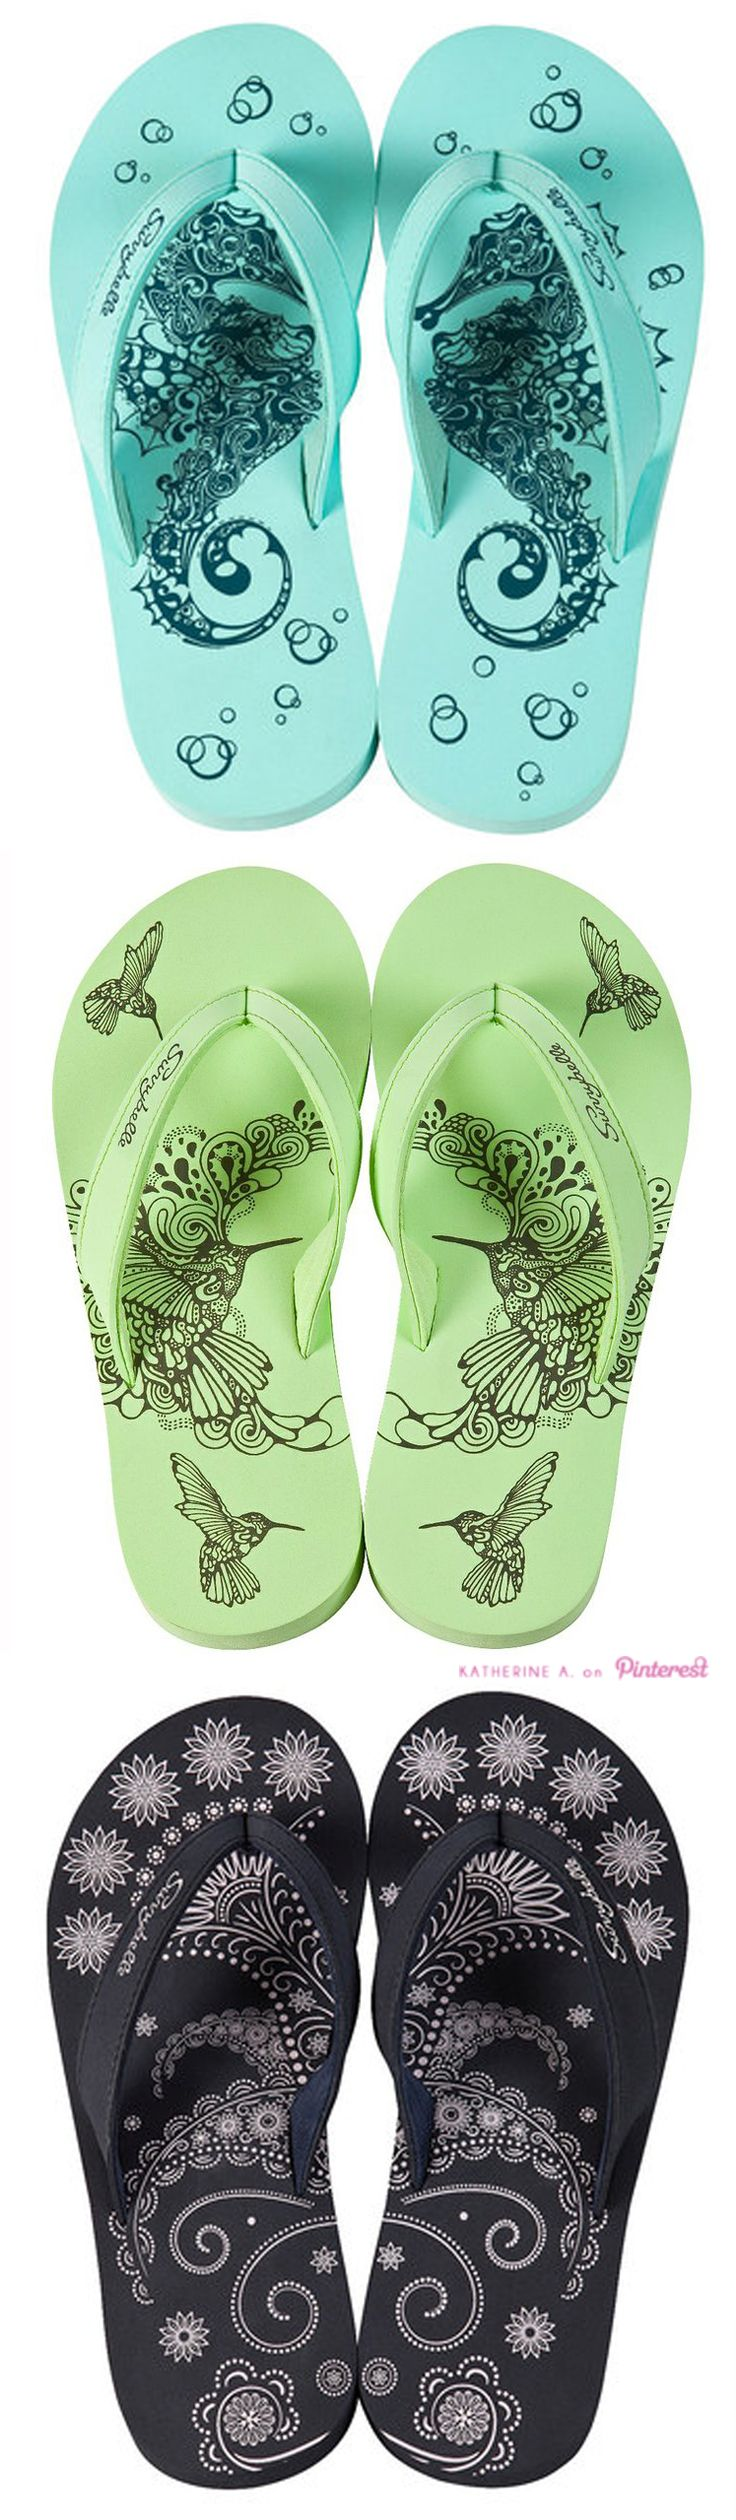 Sunnybelle Flip Flops! I love those green ones, I would love those for March!